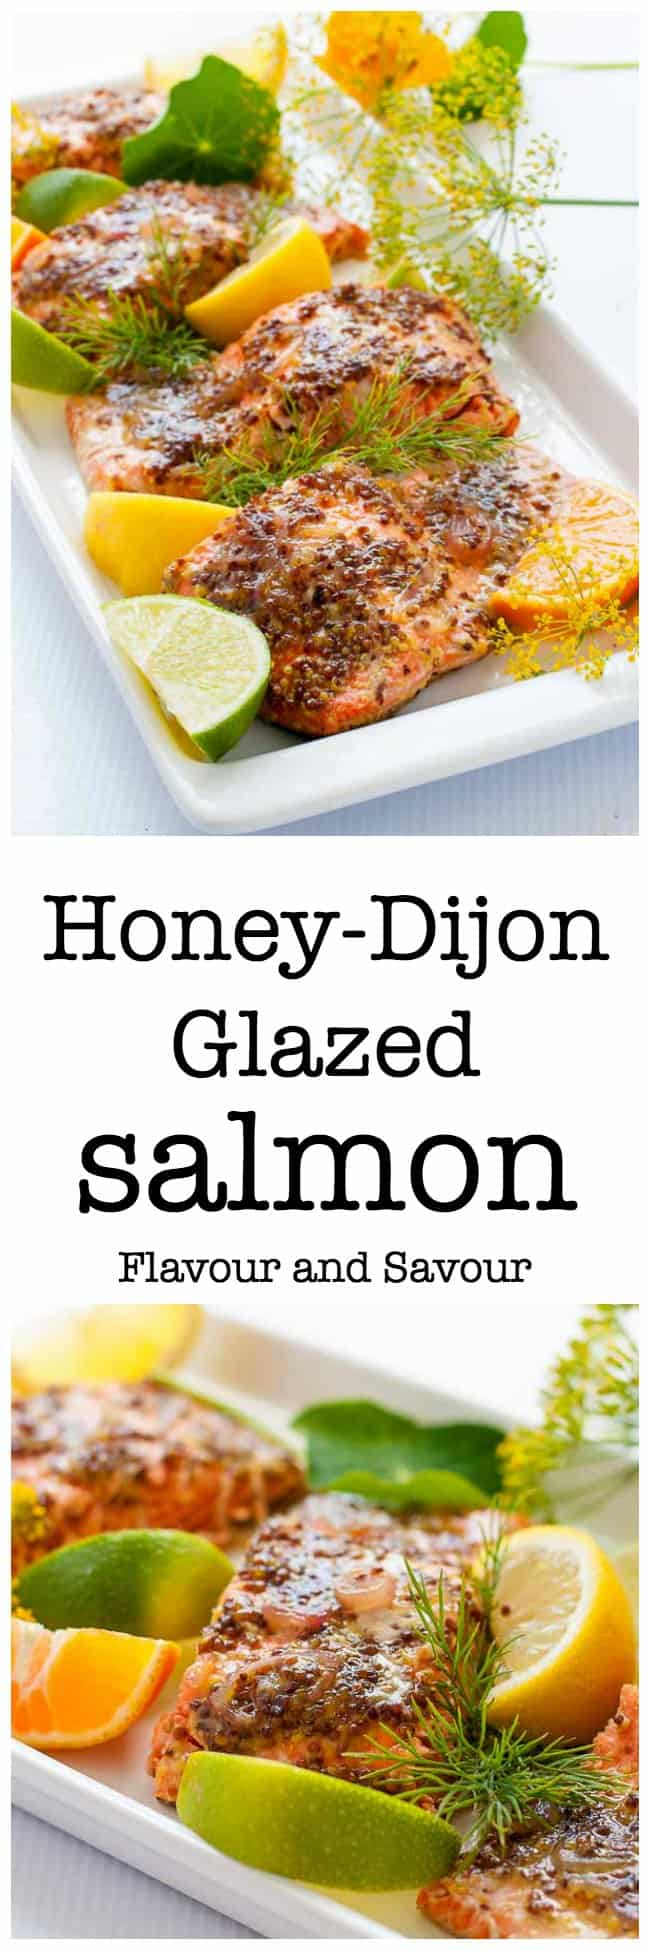 This Honey Dijon Glazed Salmon recipe has been a family favourite for years. It's quick and easy to make. Cooked in foil, you can grill it or bake it. #Paleo #gluten-free #grilled #baked #foil #wild #salmon